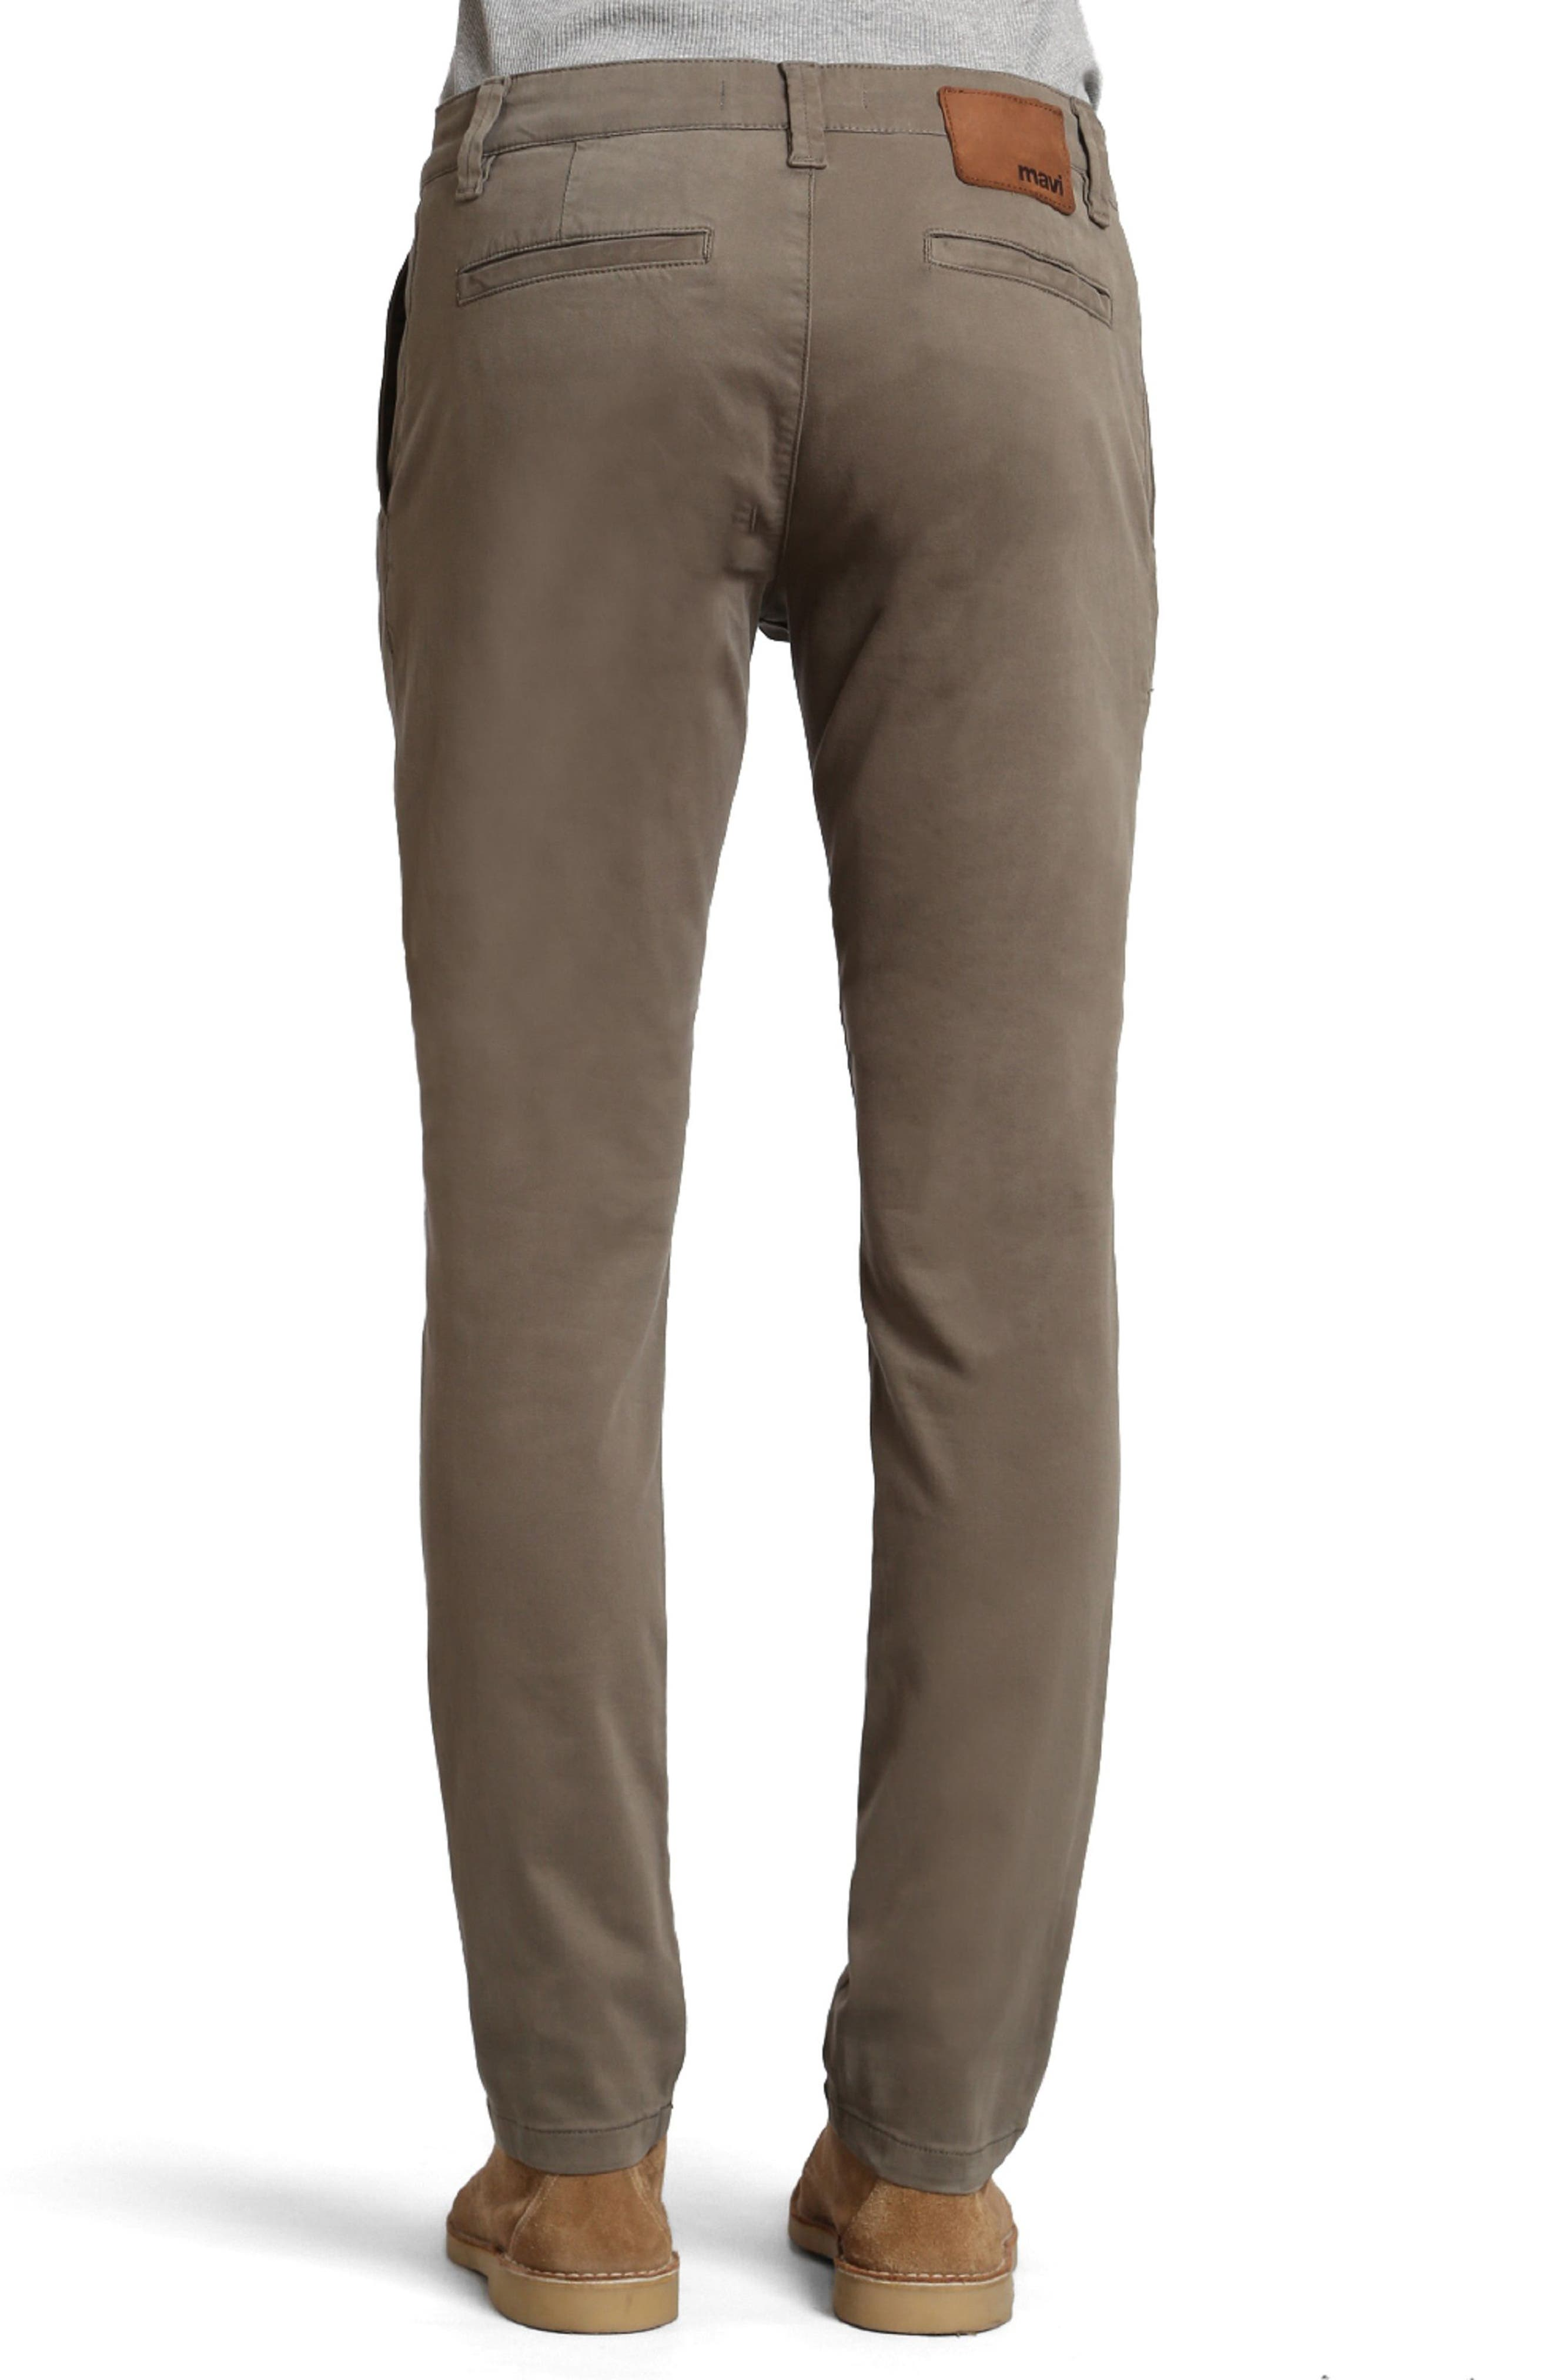 Johnny Twill Pants,                             Alternate thumbnail 2, color,                             Dusty Olive Twill